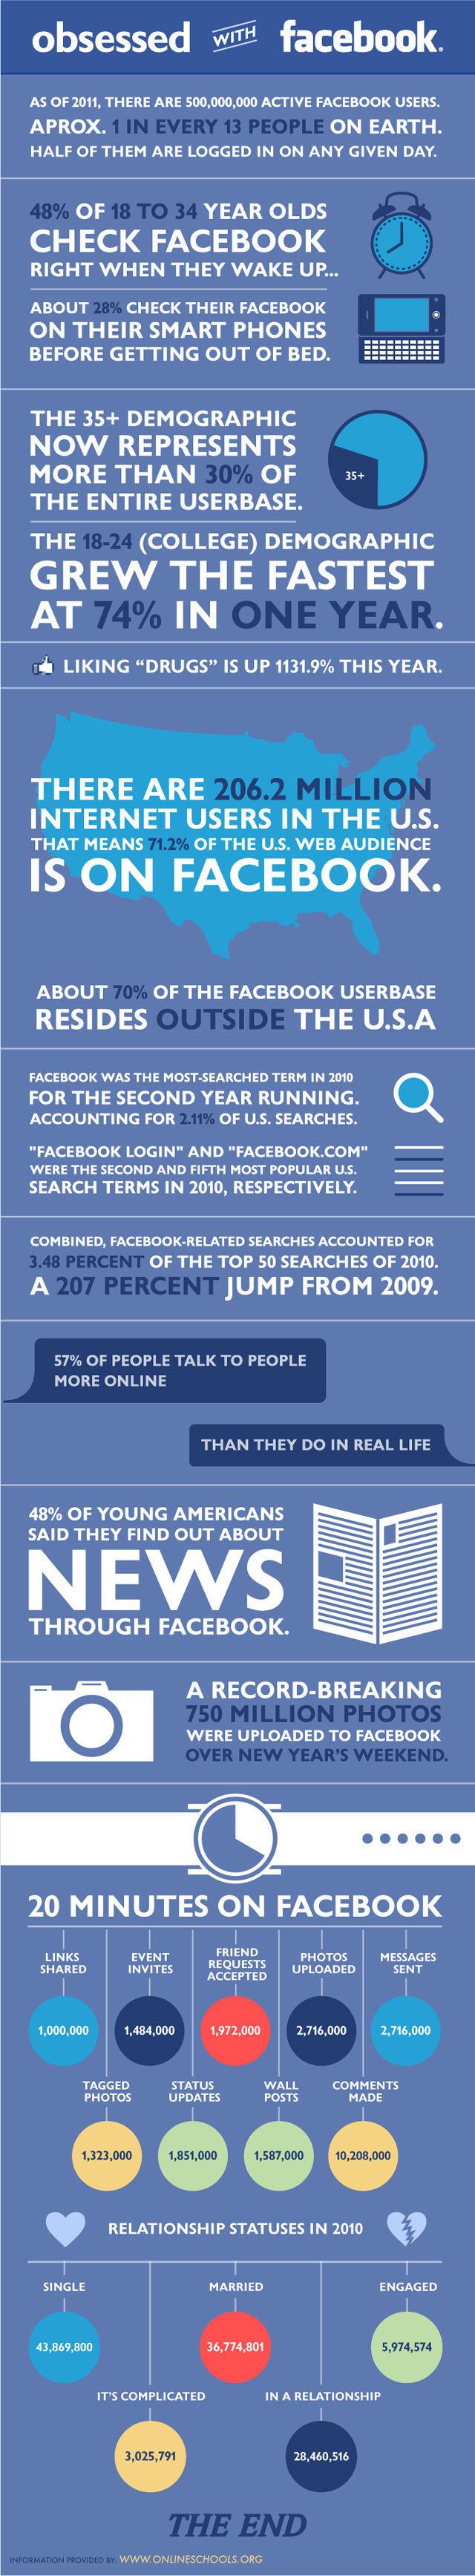 Facebook Obsession